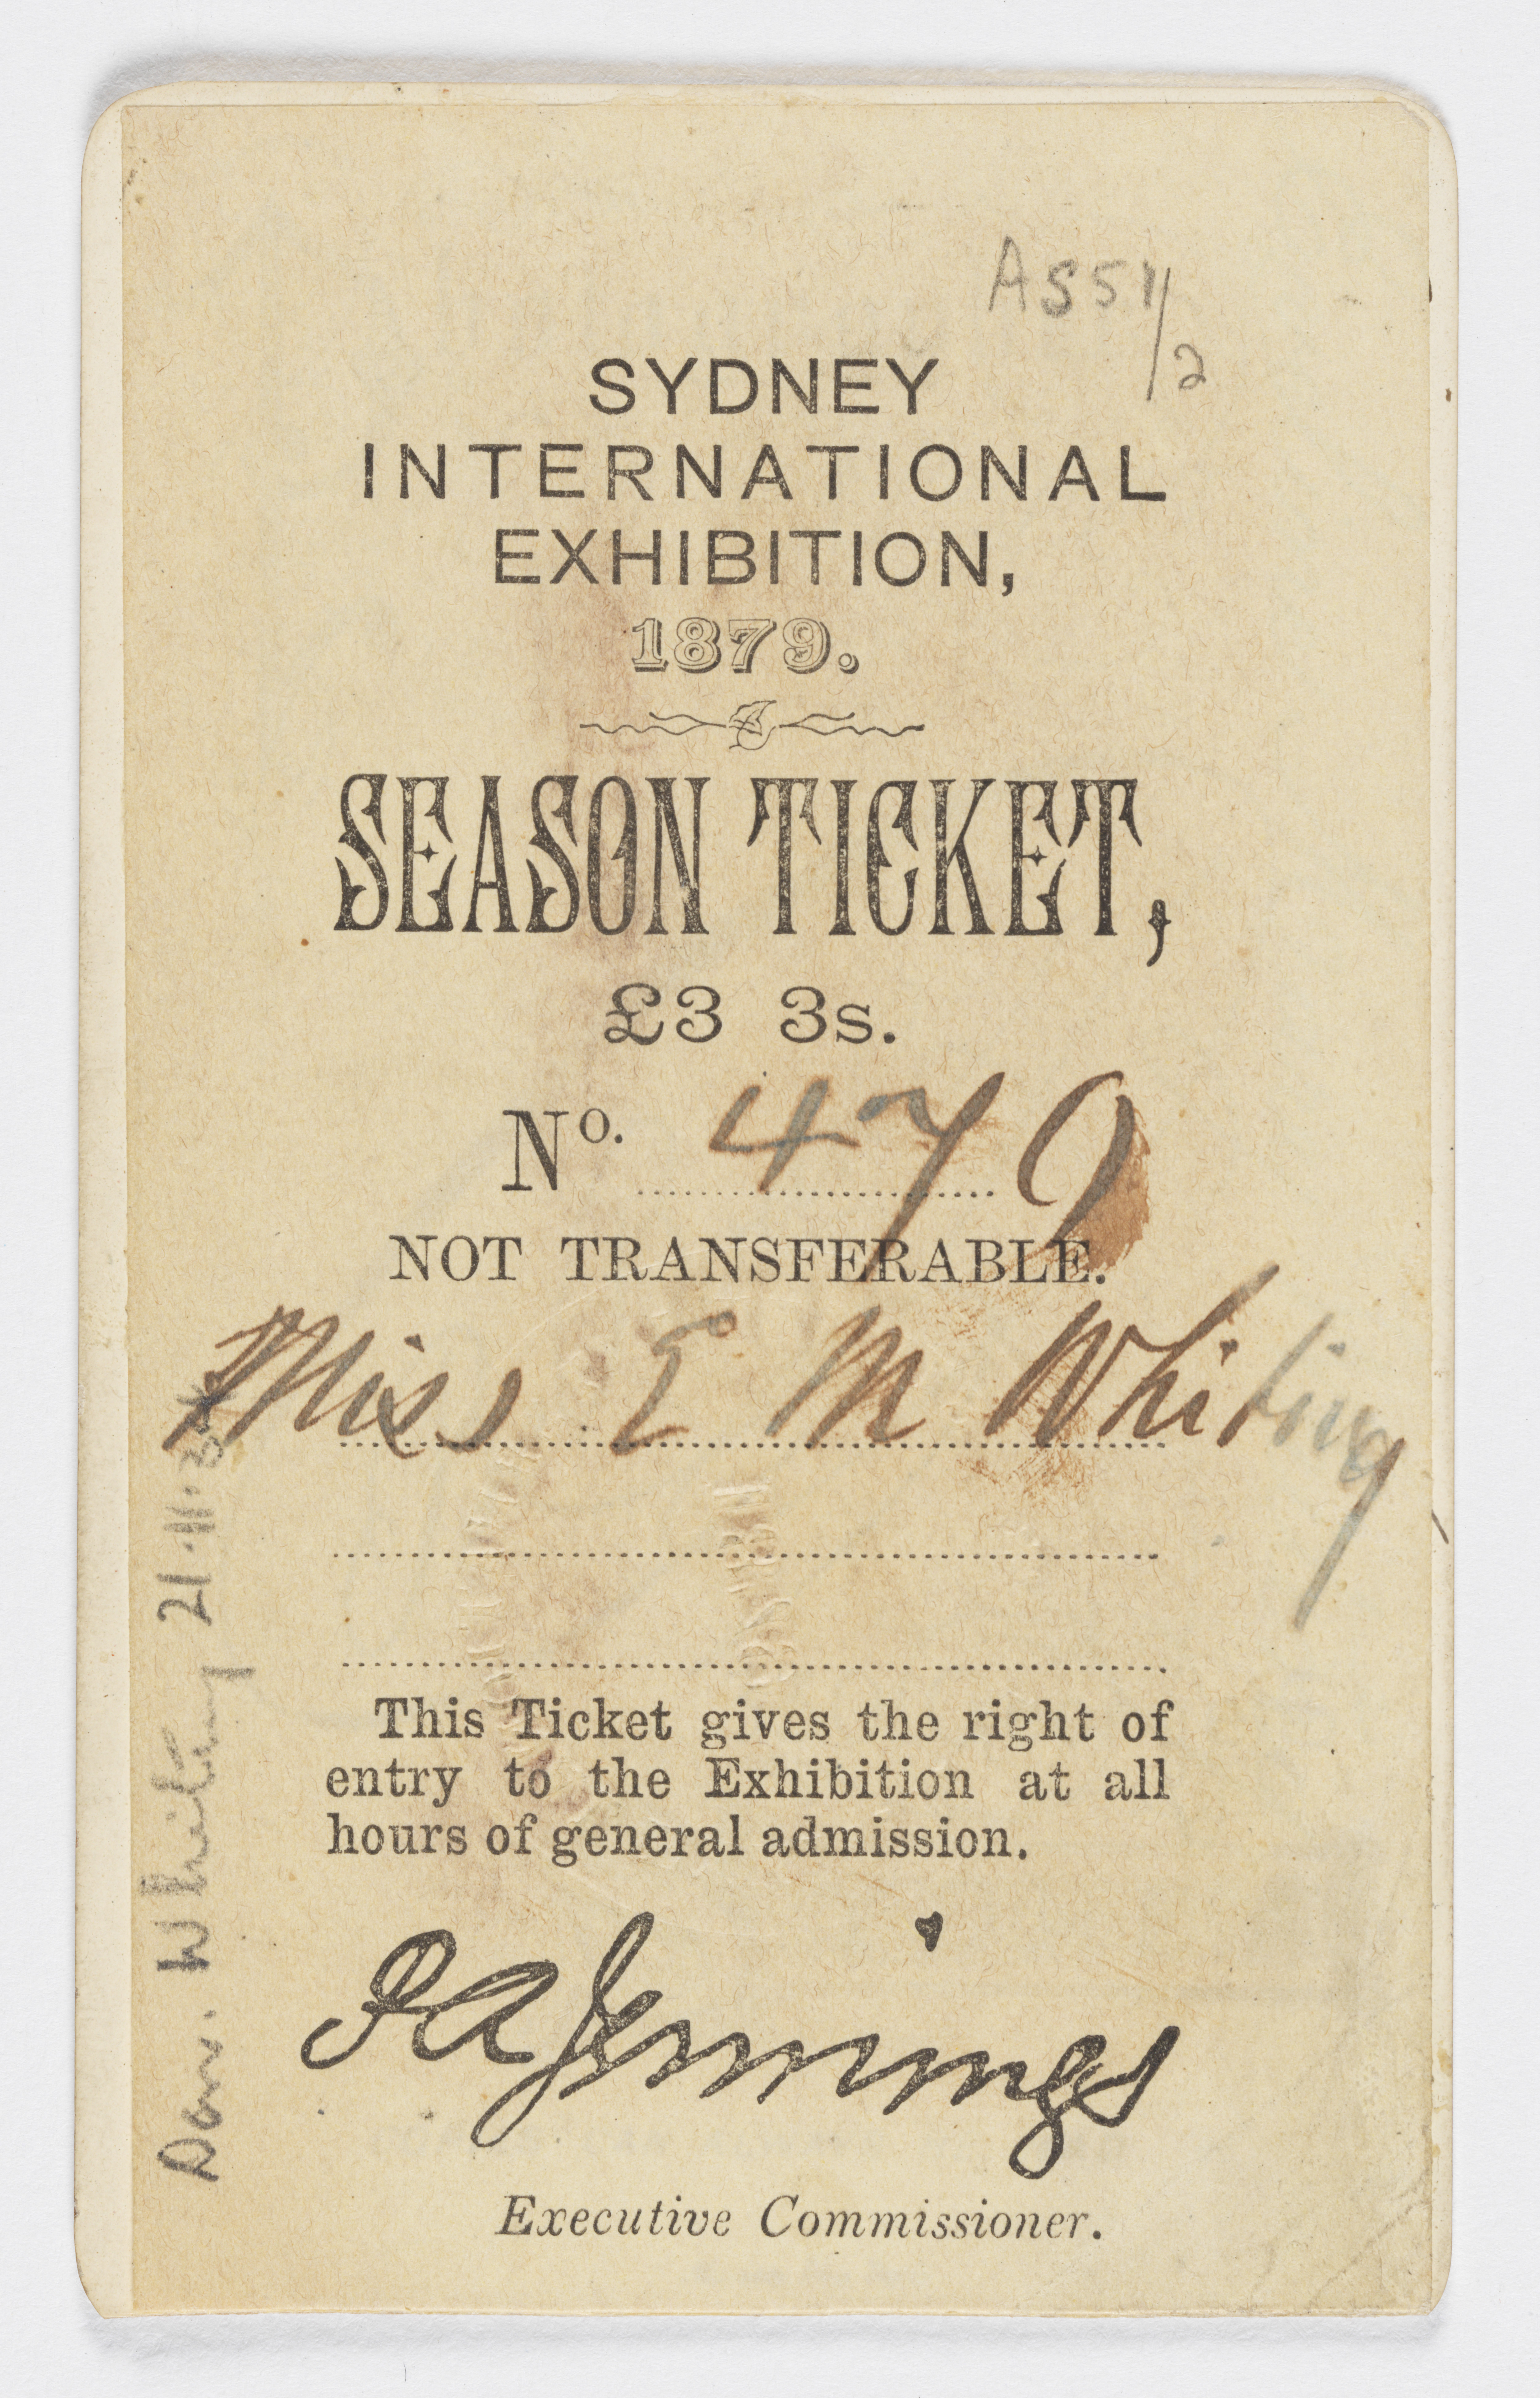 Season ticket issued to Eveline Mary Whiting for the International Exhibition